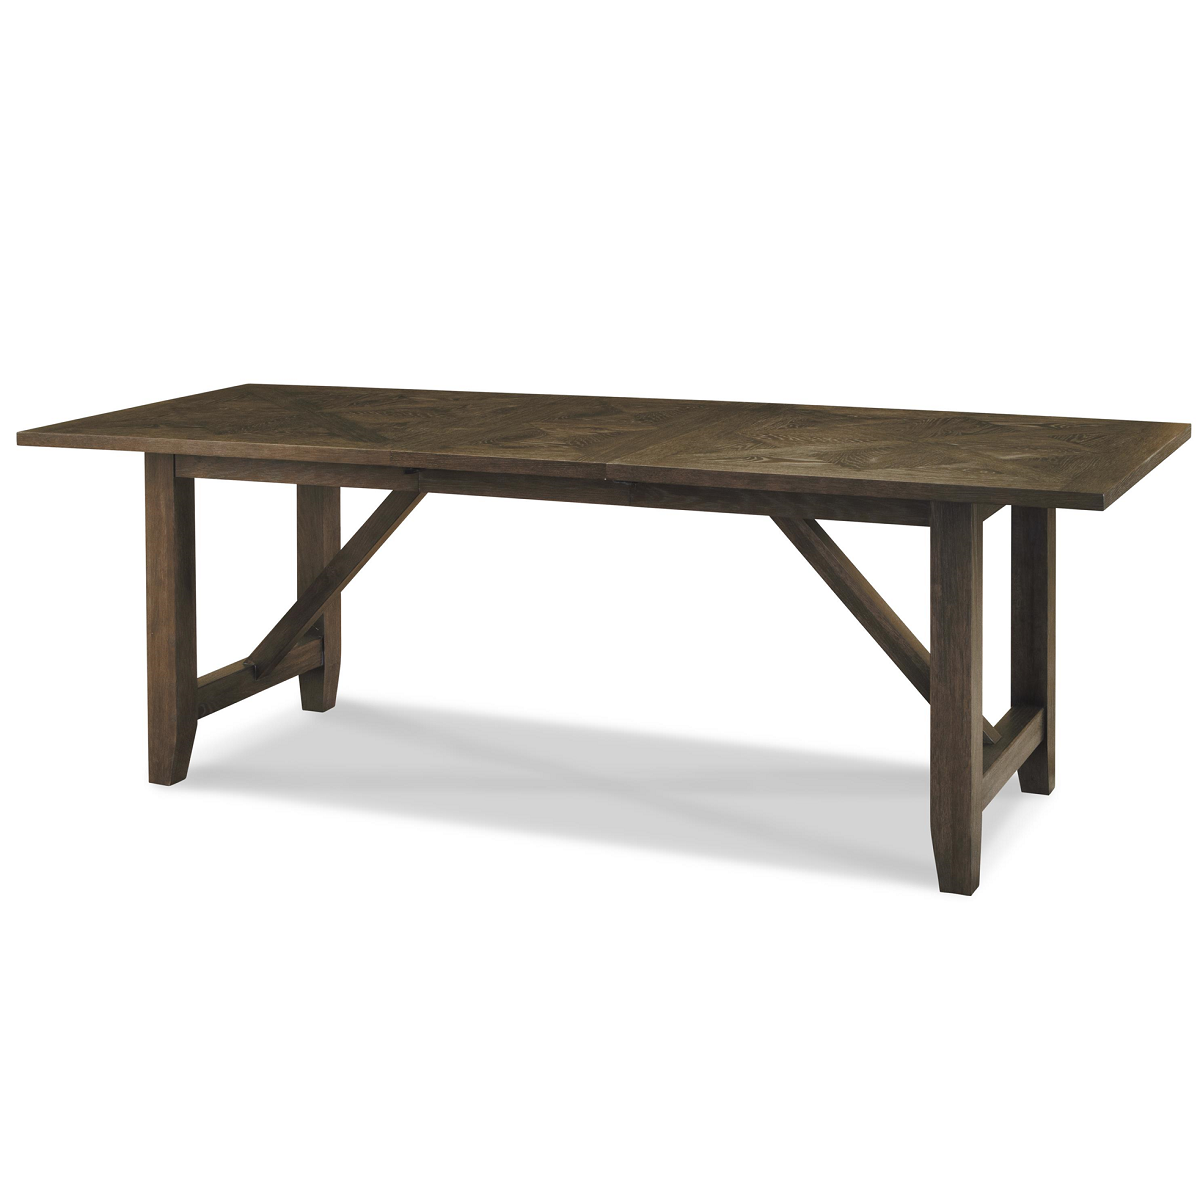 French Oak Extendable Farmhouse Kitchen Table 78 100 Zin Home